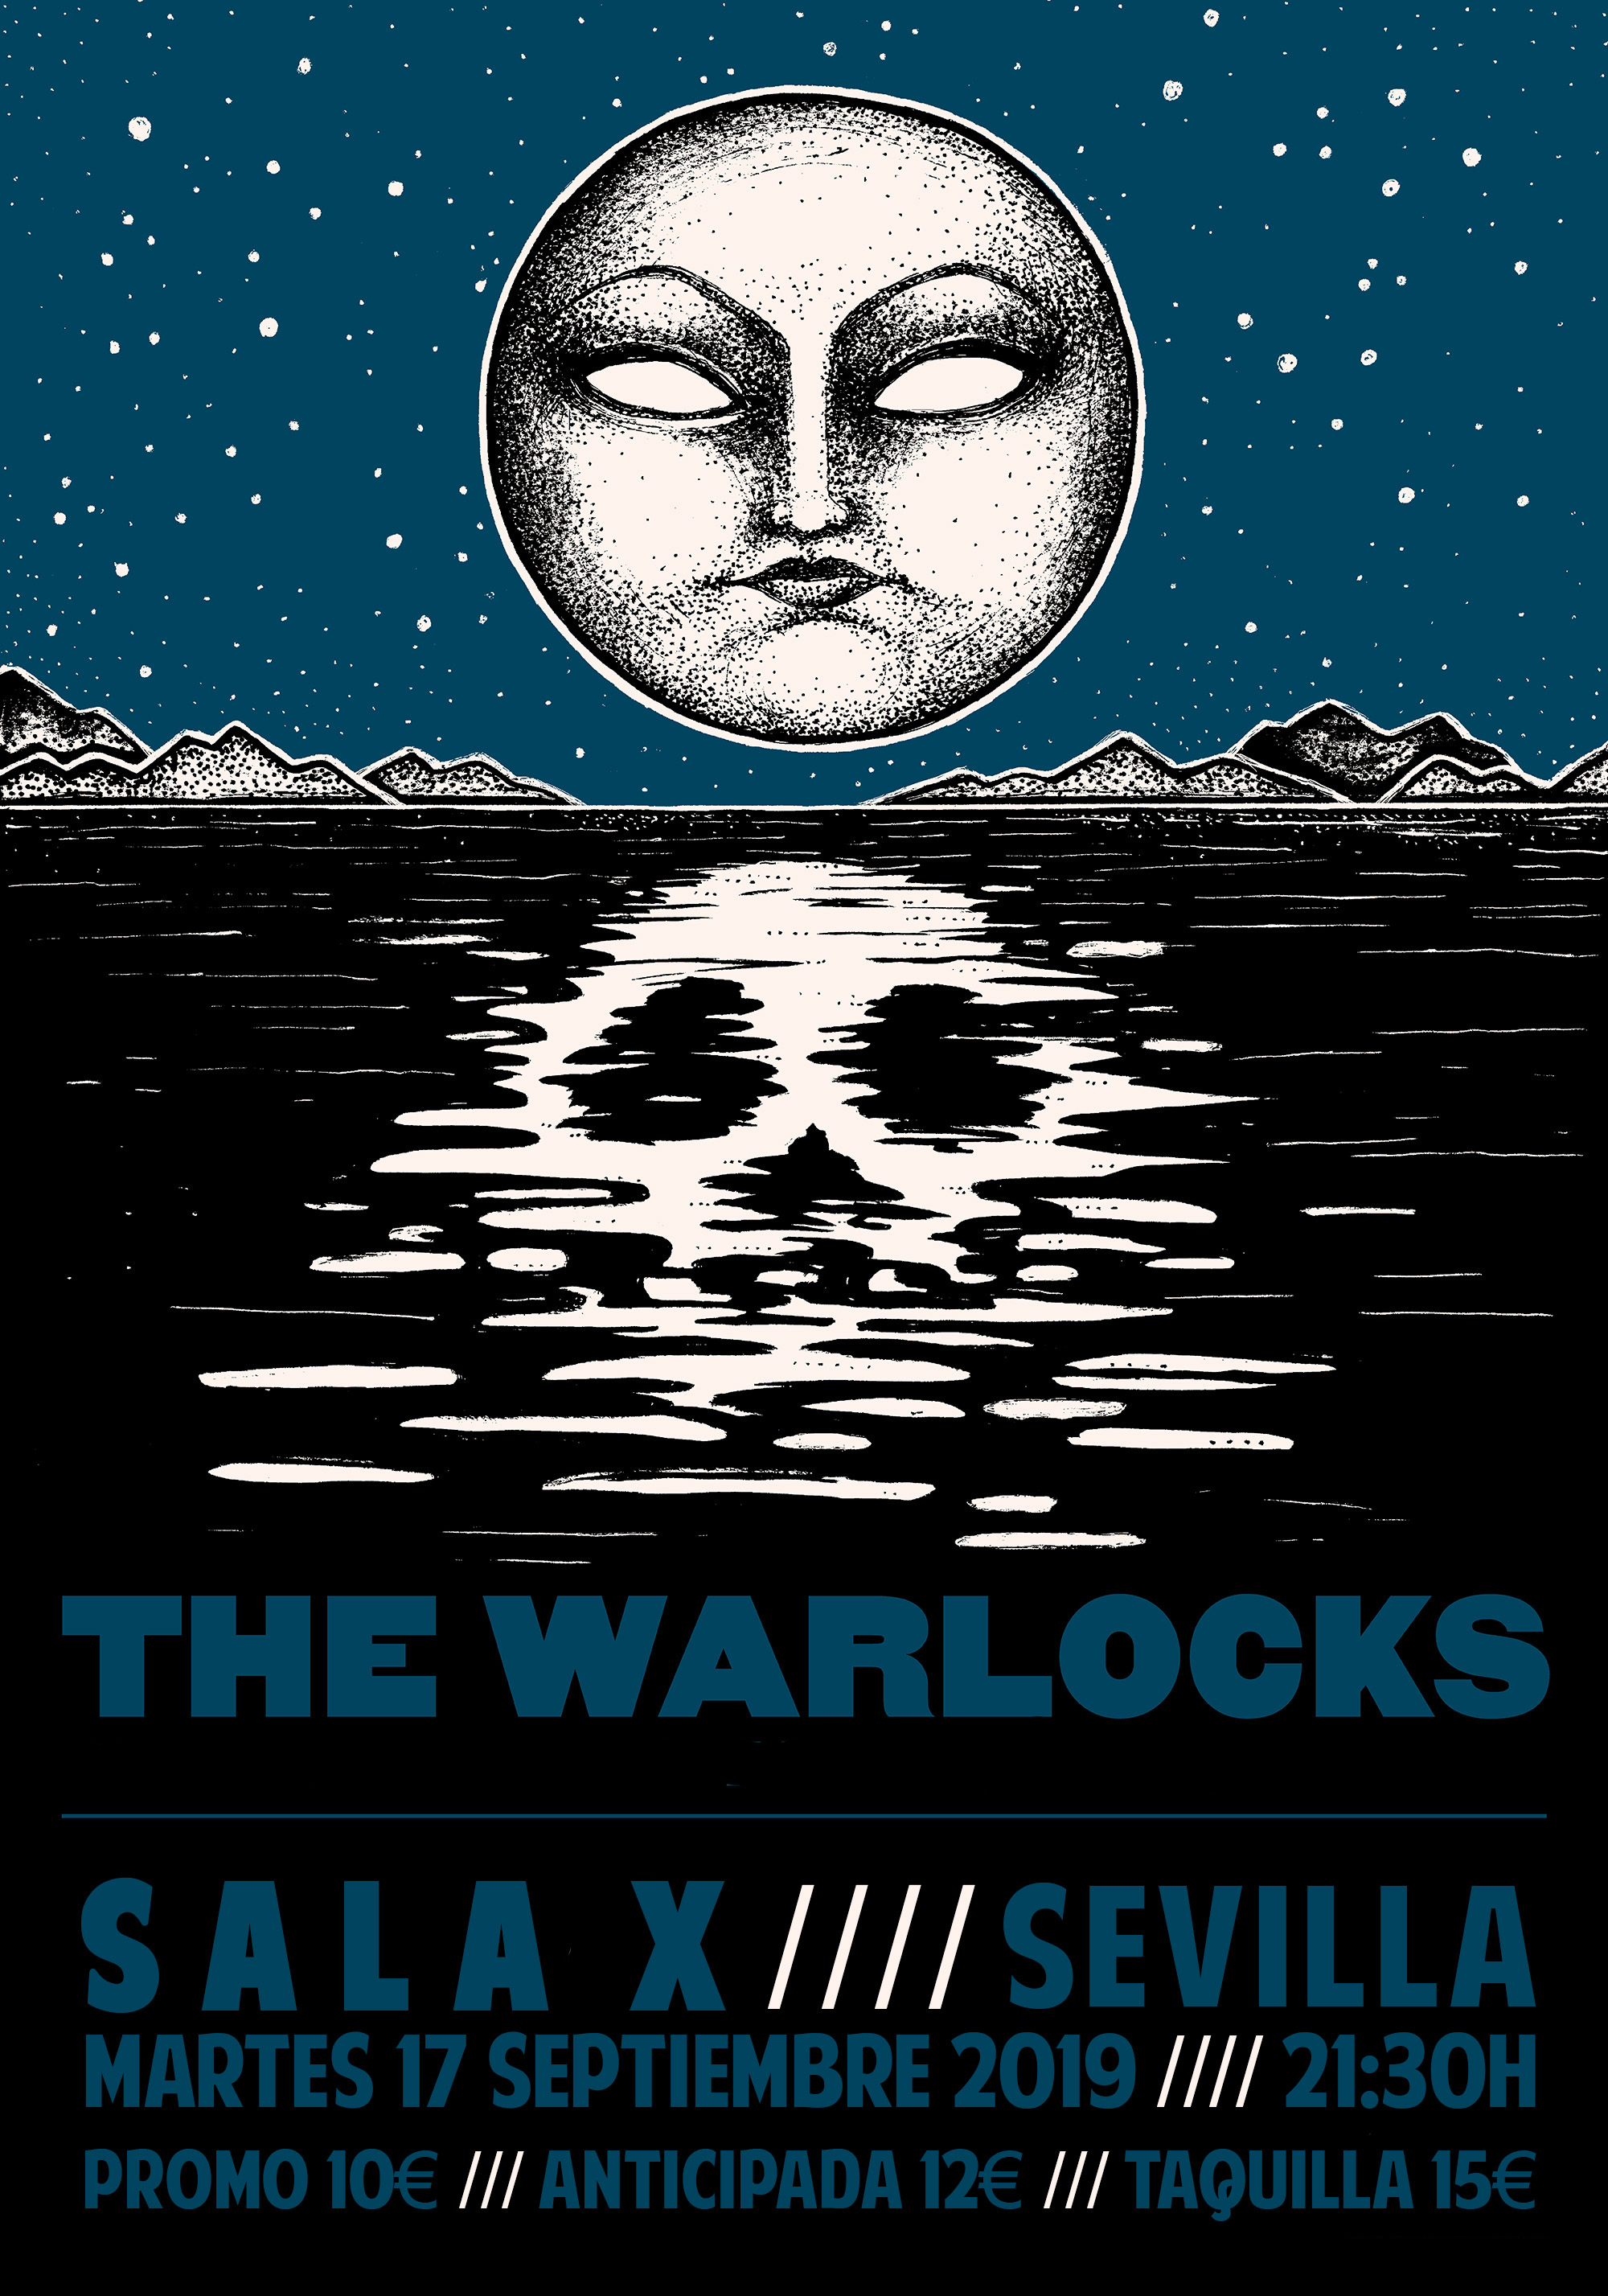 2019-09-17 The Warlocks cartel sala x